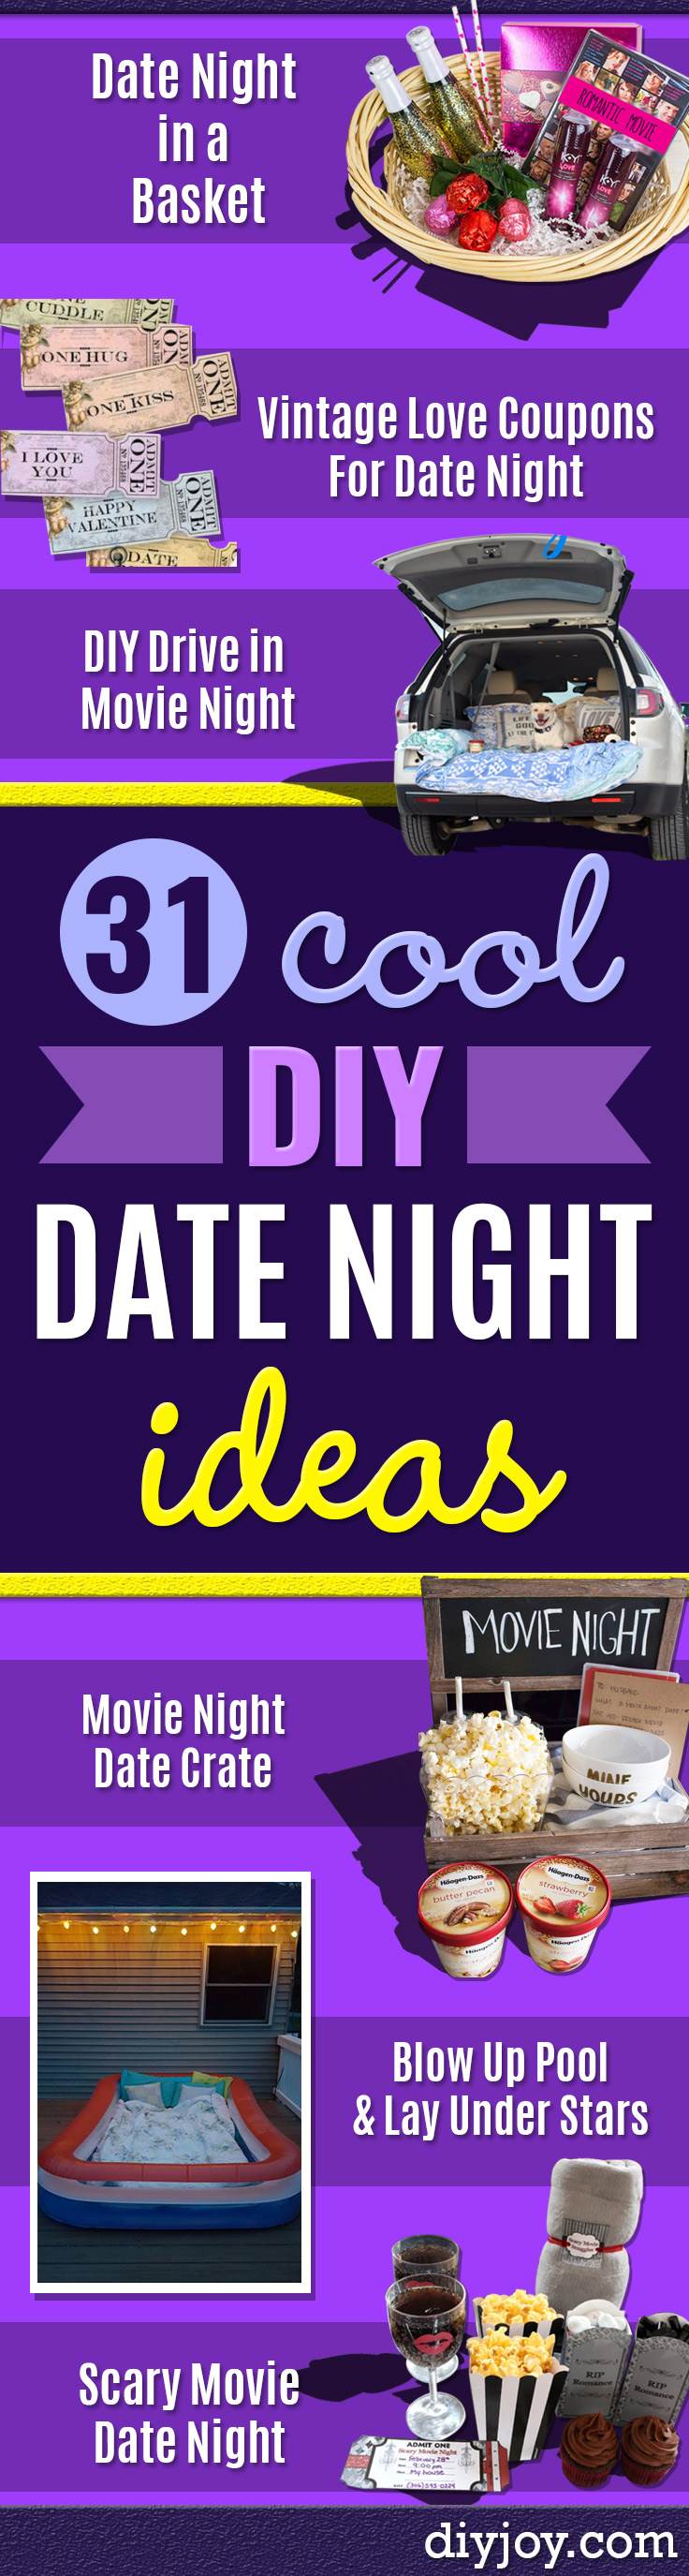 date night ideas easy- Creative Ways to Go On Inexpensive Dates - Creative Ways for Couples to Spend Time Together - Cute Kits and Cool DIY Gift Ideas for Men and Women - Cheap Ways to Have Fun With Your Husbnad or Wife, Girlfriend or Boyfriend